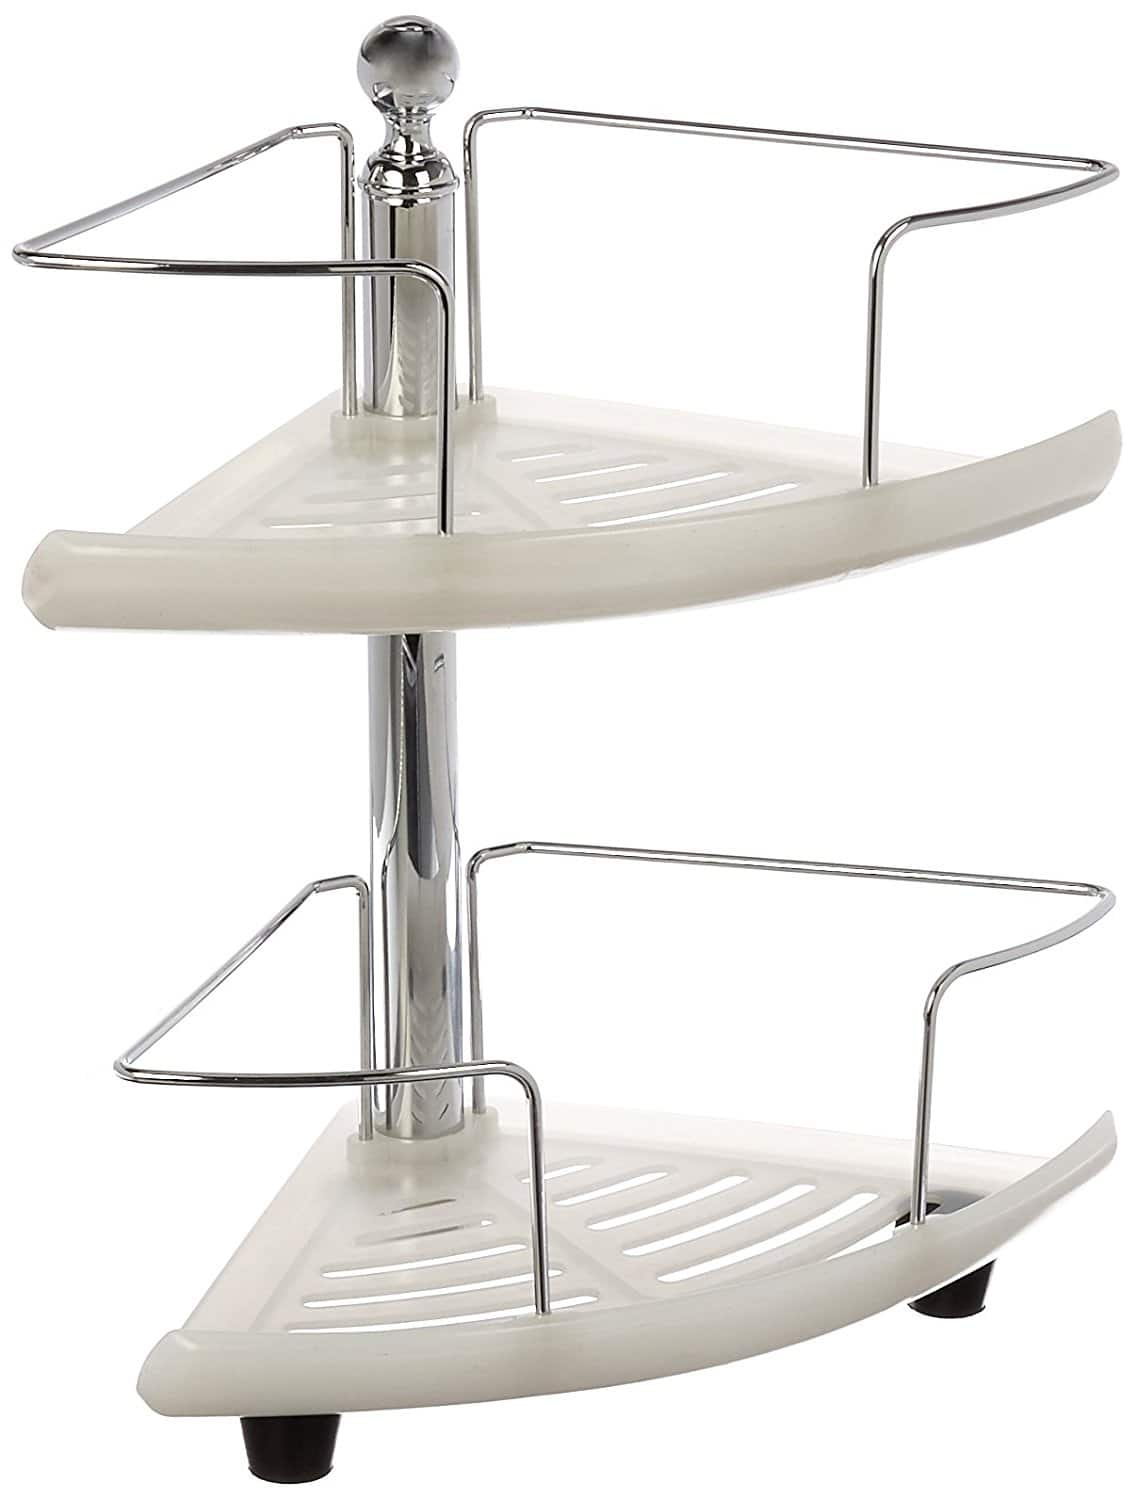 HomeZone 2-Tier Standing Adjustable Caddy, Chrome. $6.76 (Walmart)